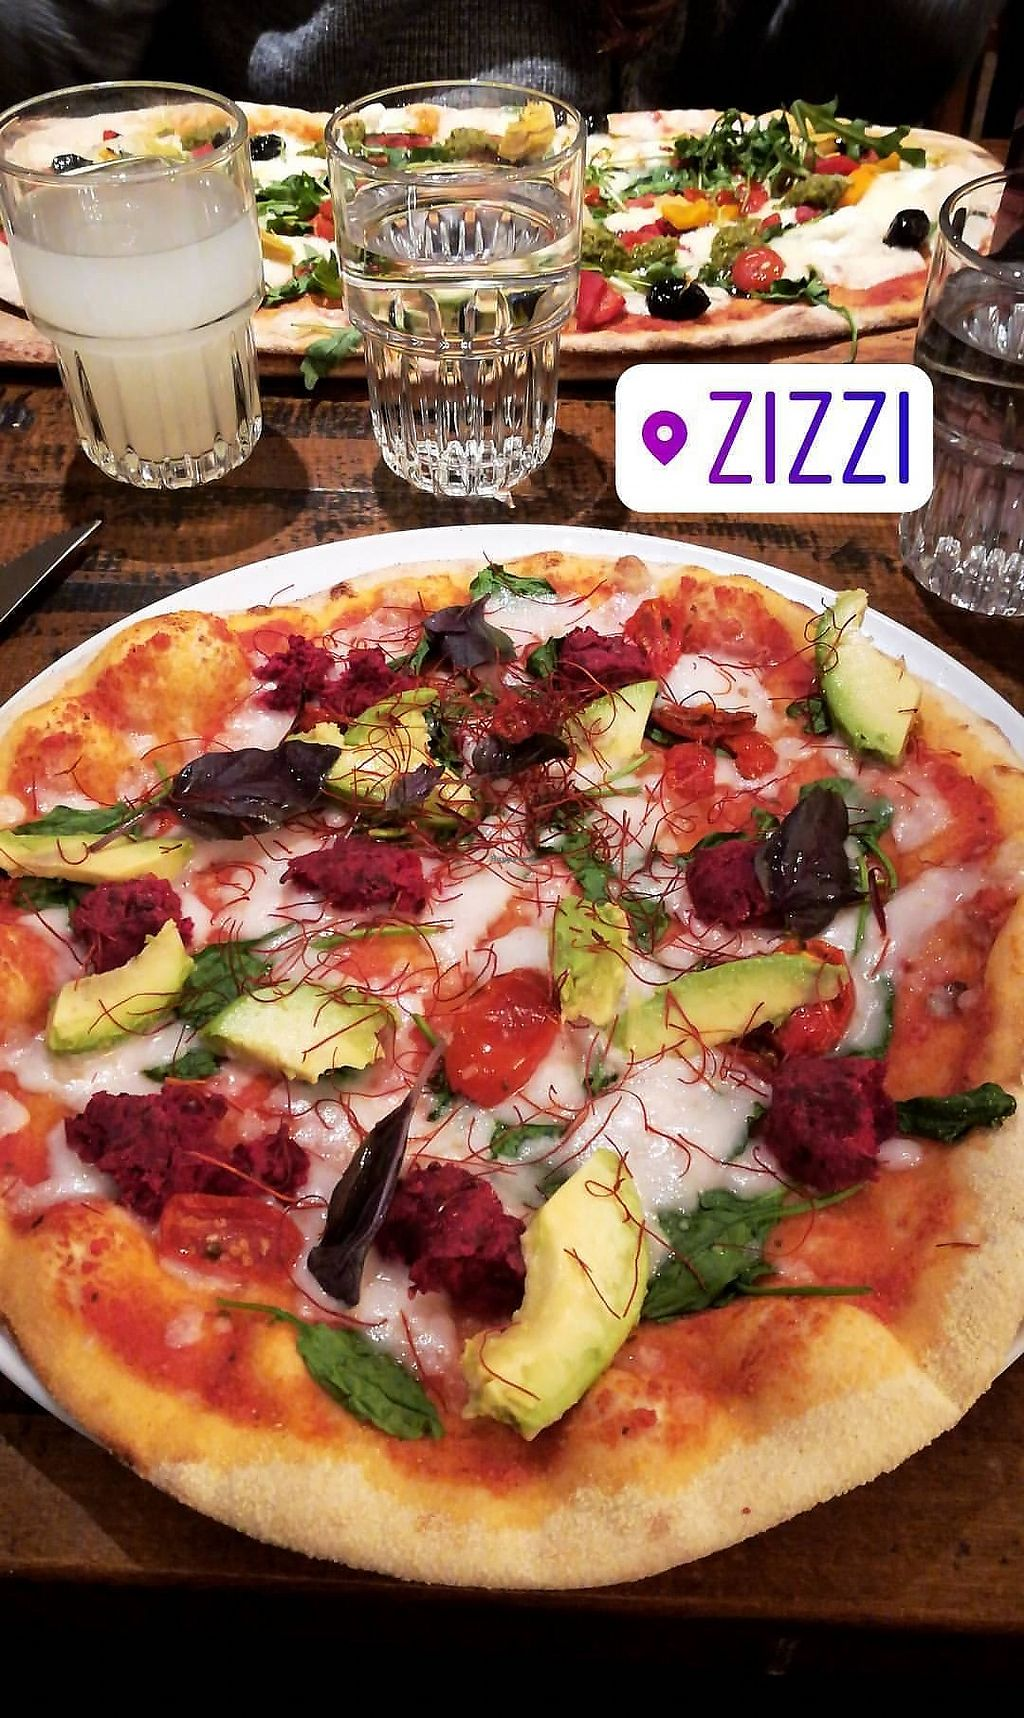 """Photo of Zizzi - Roxburgh Court  by <a href=""""/members/profile/Jeyjess"""">Jeyjess</a> <br/>Pizza arcobaleno with vegan cheese  <br/> January 27, 2018  - <a href='/contact/abuse/image/77440/351654'>Report</a>"""